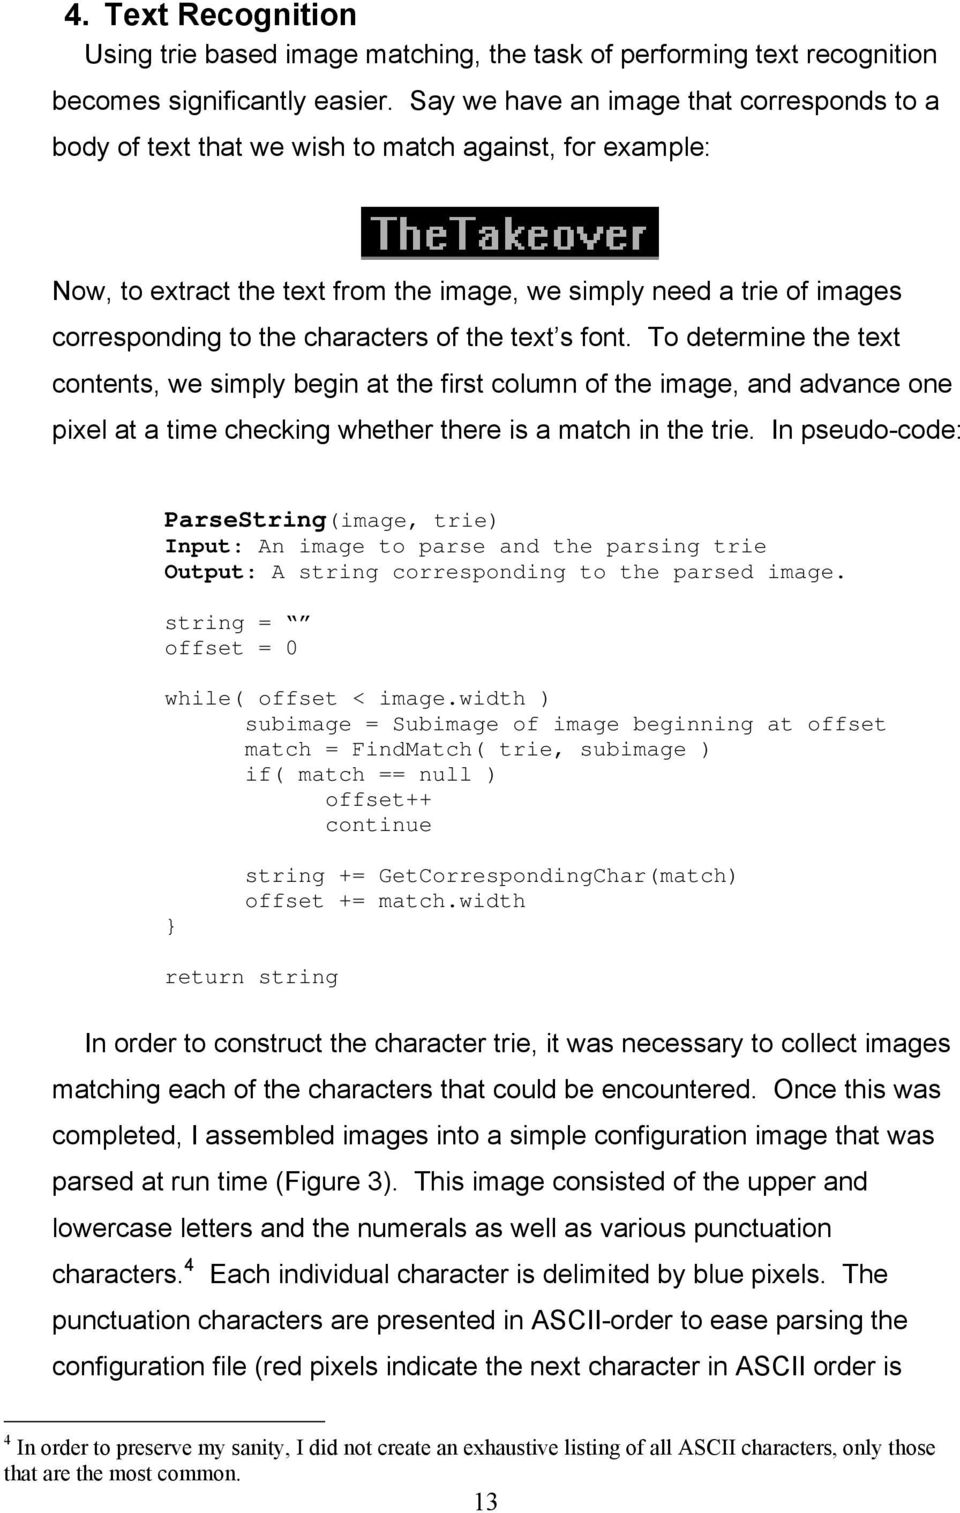 characters of the text s font. To determine the text contents, we simply begin at the first column of the image, and advance one pixel at a time checking whether there is a match in the trie.